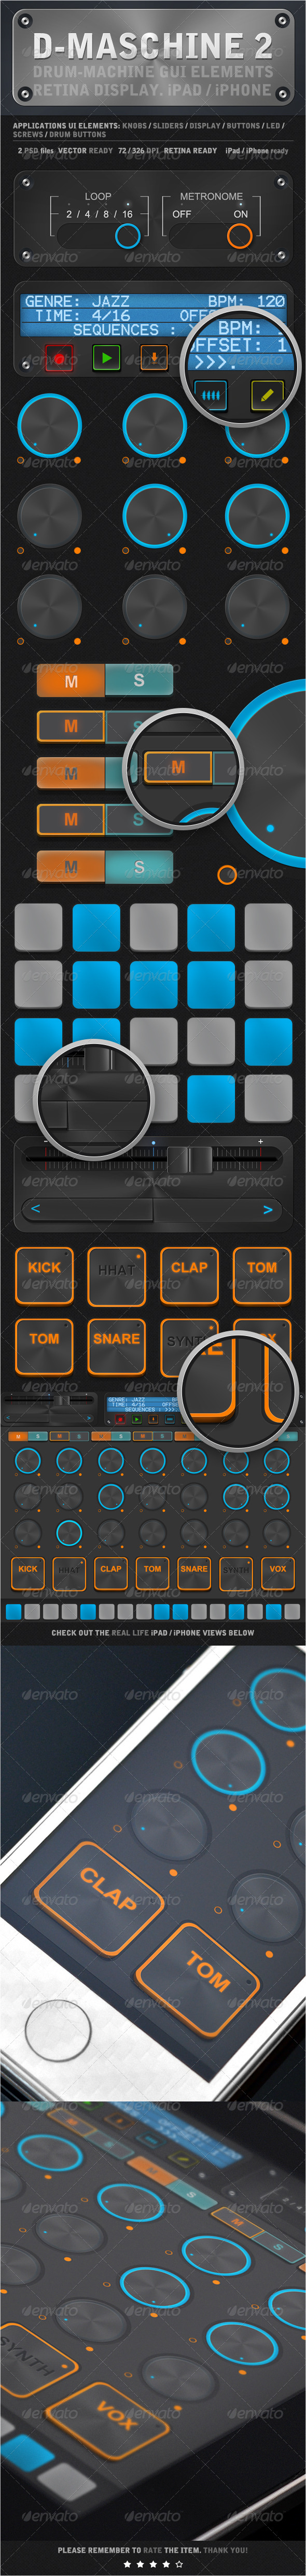 GraphicRiver D-Maschine 2 iPad iPhone UI Elements 4444048